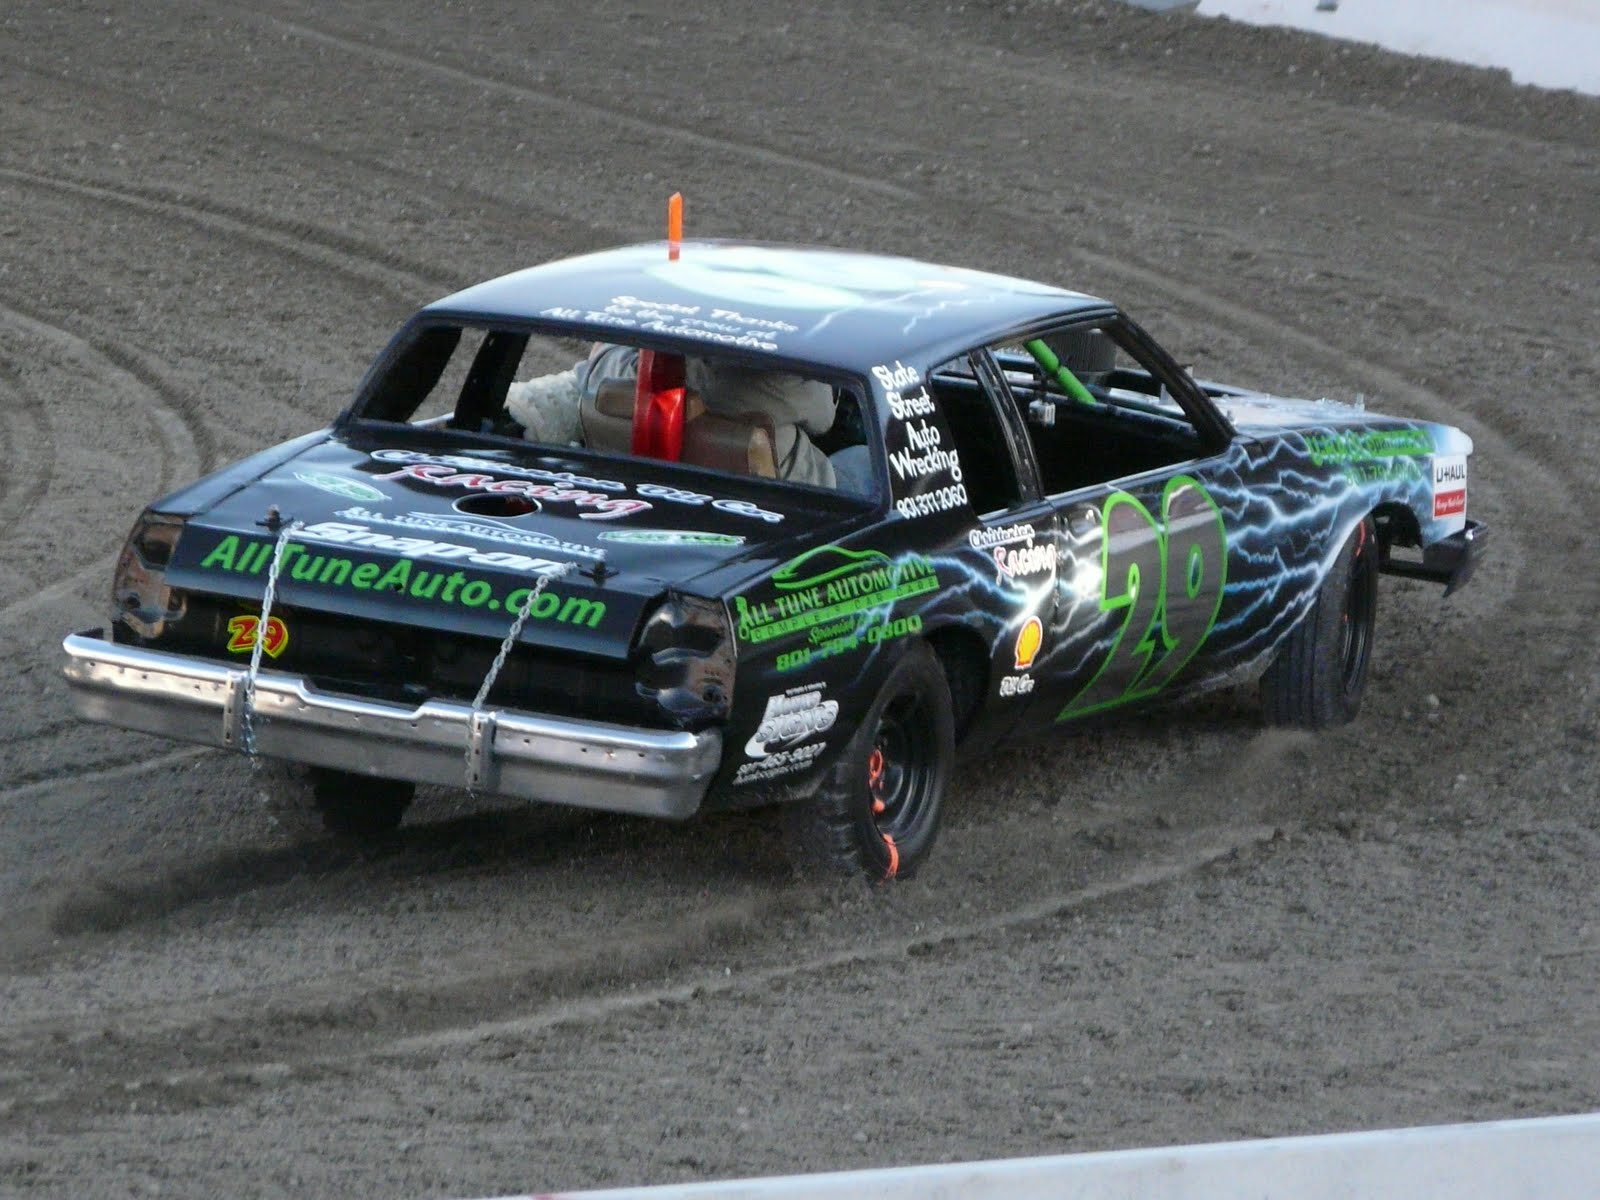 Best Demo Derby Car Paint Jobs